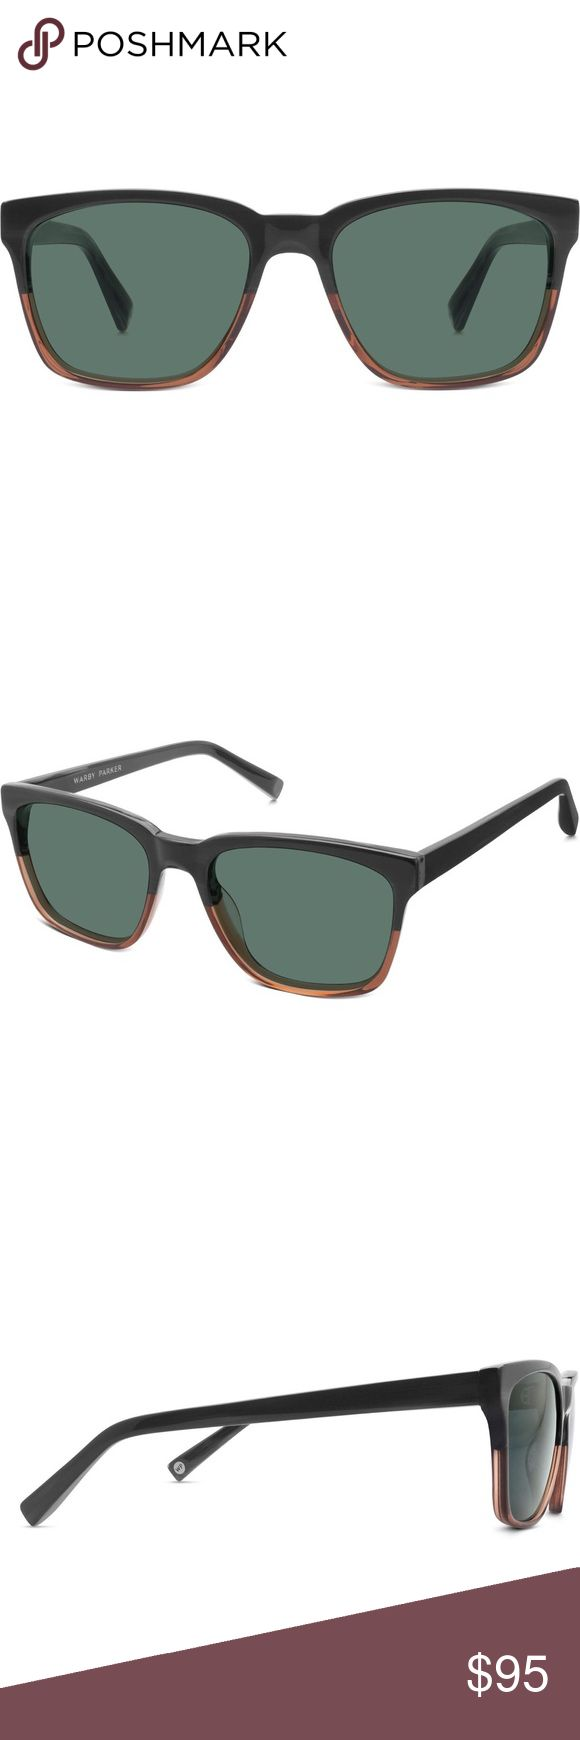 Warby Parker Barkley Sunglasses The Barkley frame manages to look at once midcentury and contemporary and totally stylish on everyone. Sizing: 53-18-142. Color: Antique Shade Fade. Warby Parker Accessories Sunglasses